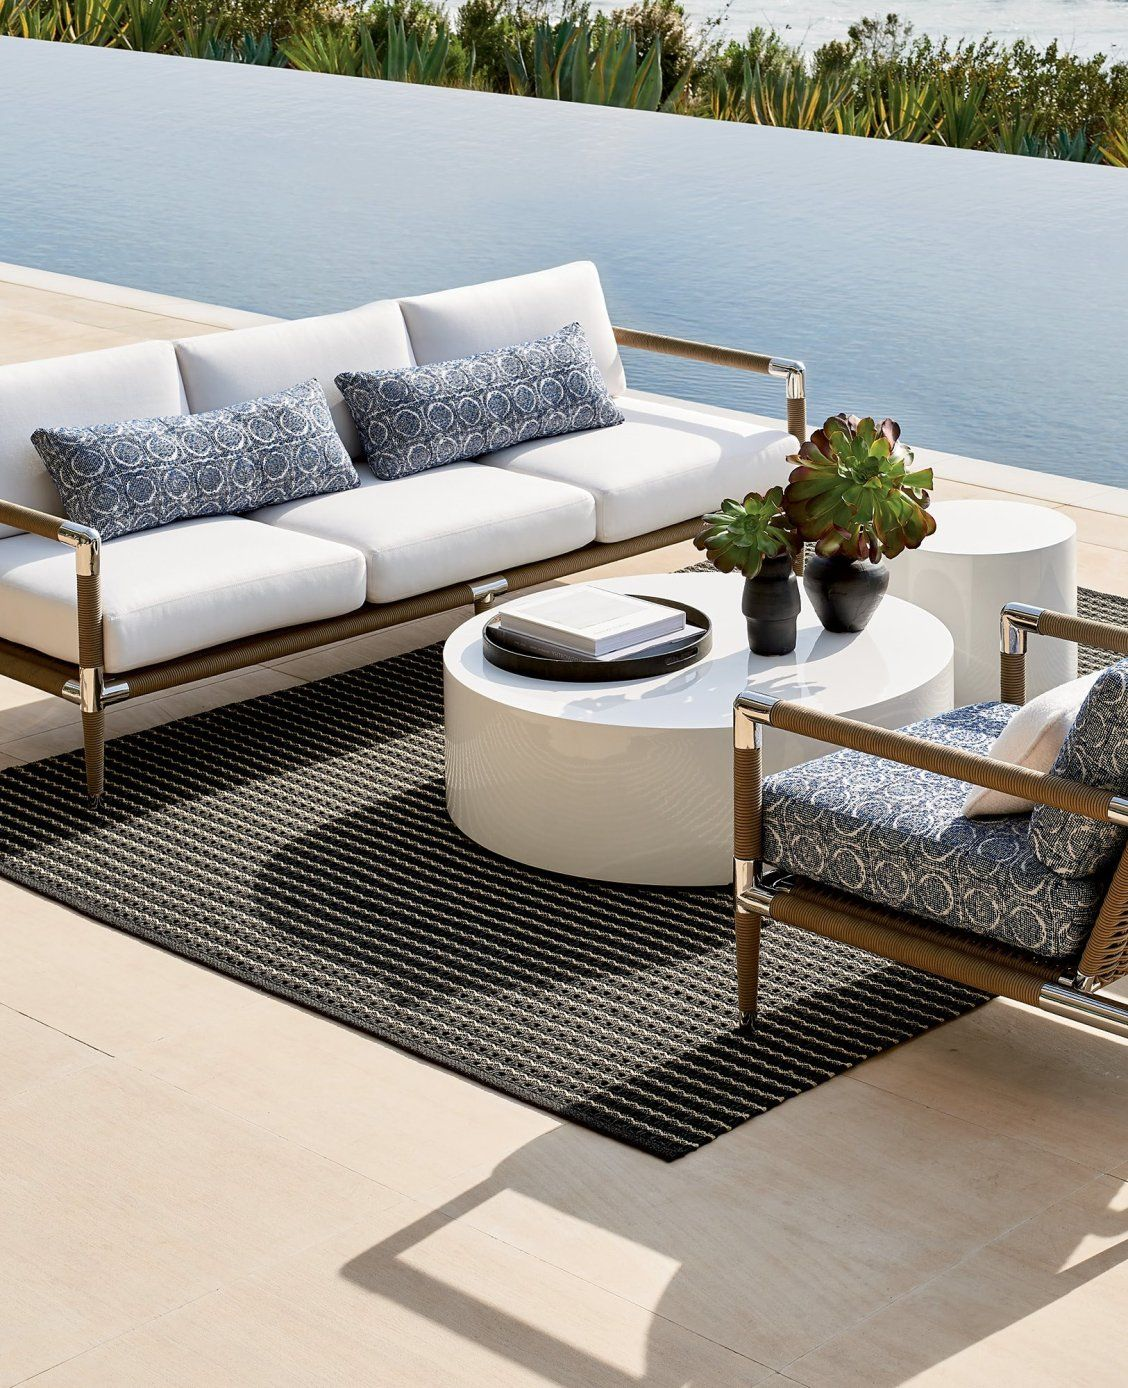 Terra Mar Seating Frontgate Outdoor Furniture Best Outdoor Furniture Diy Outdoor Furniture